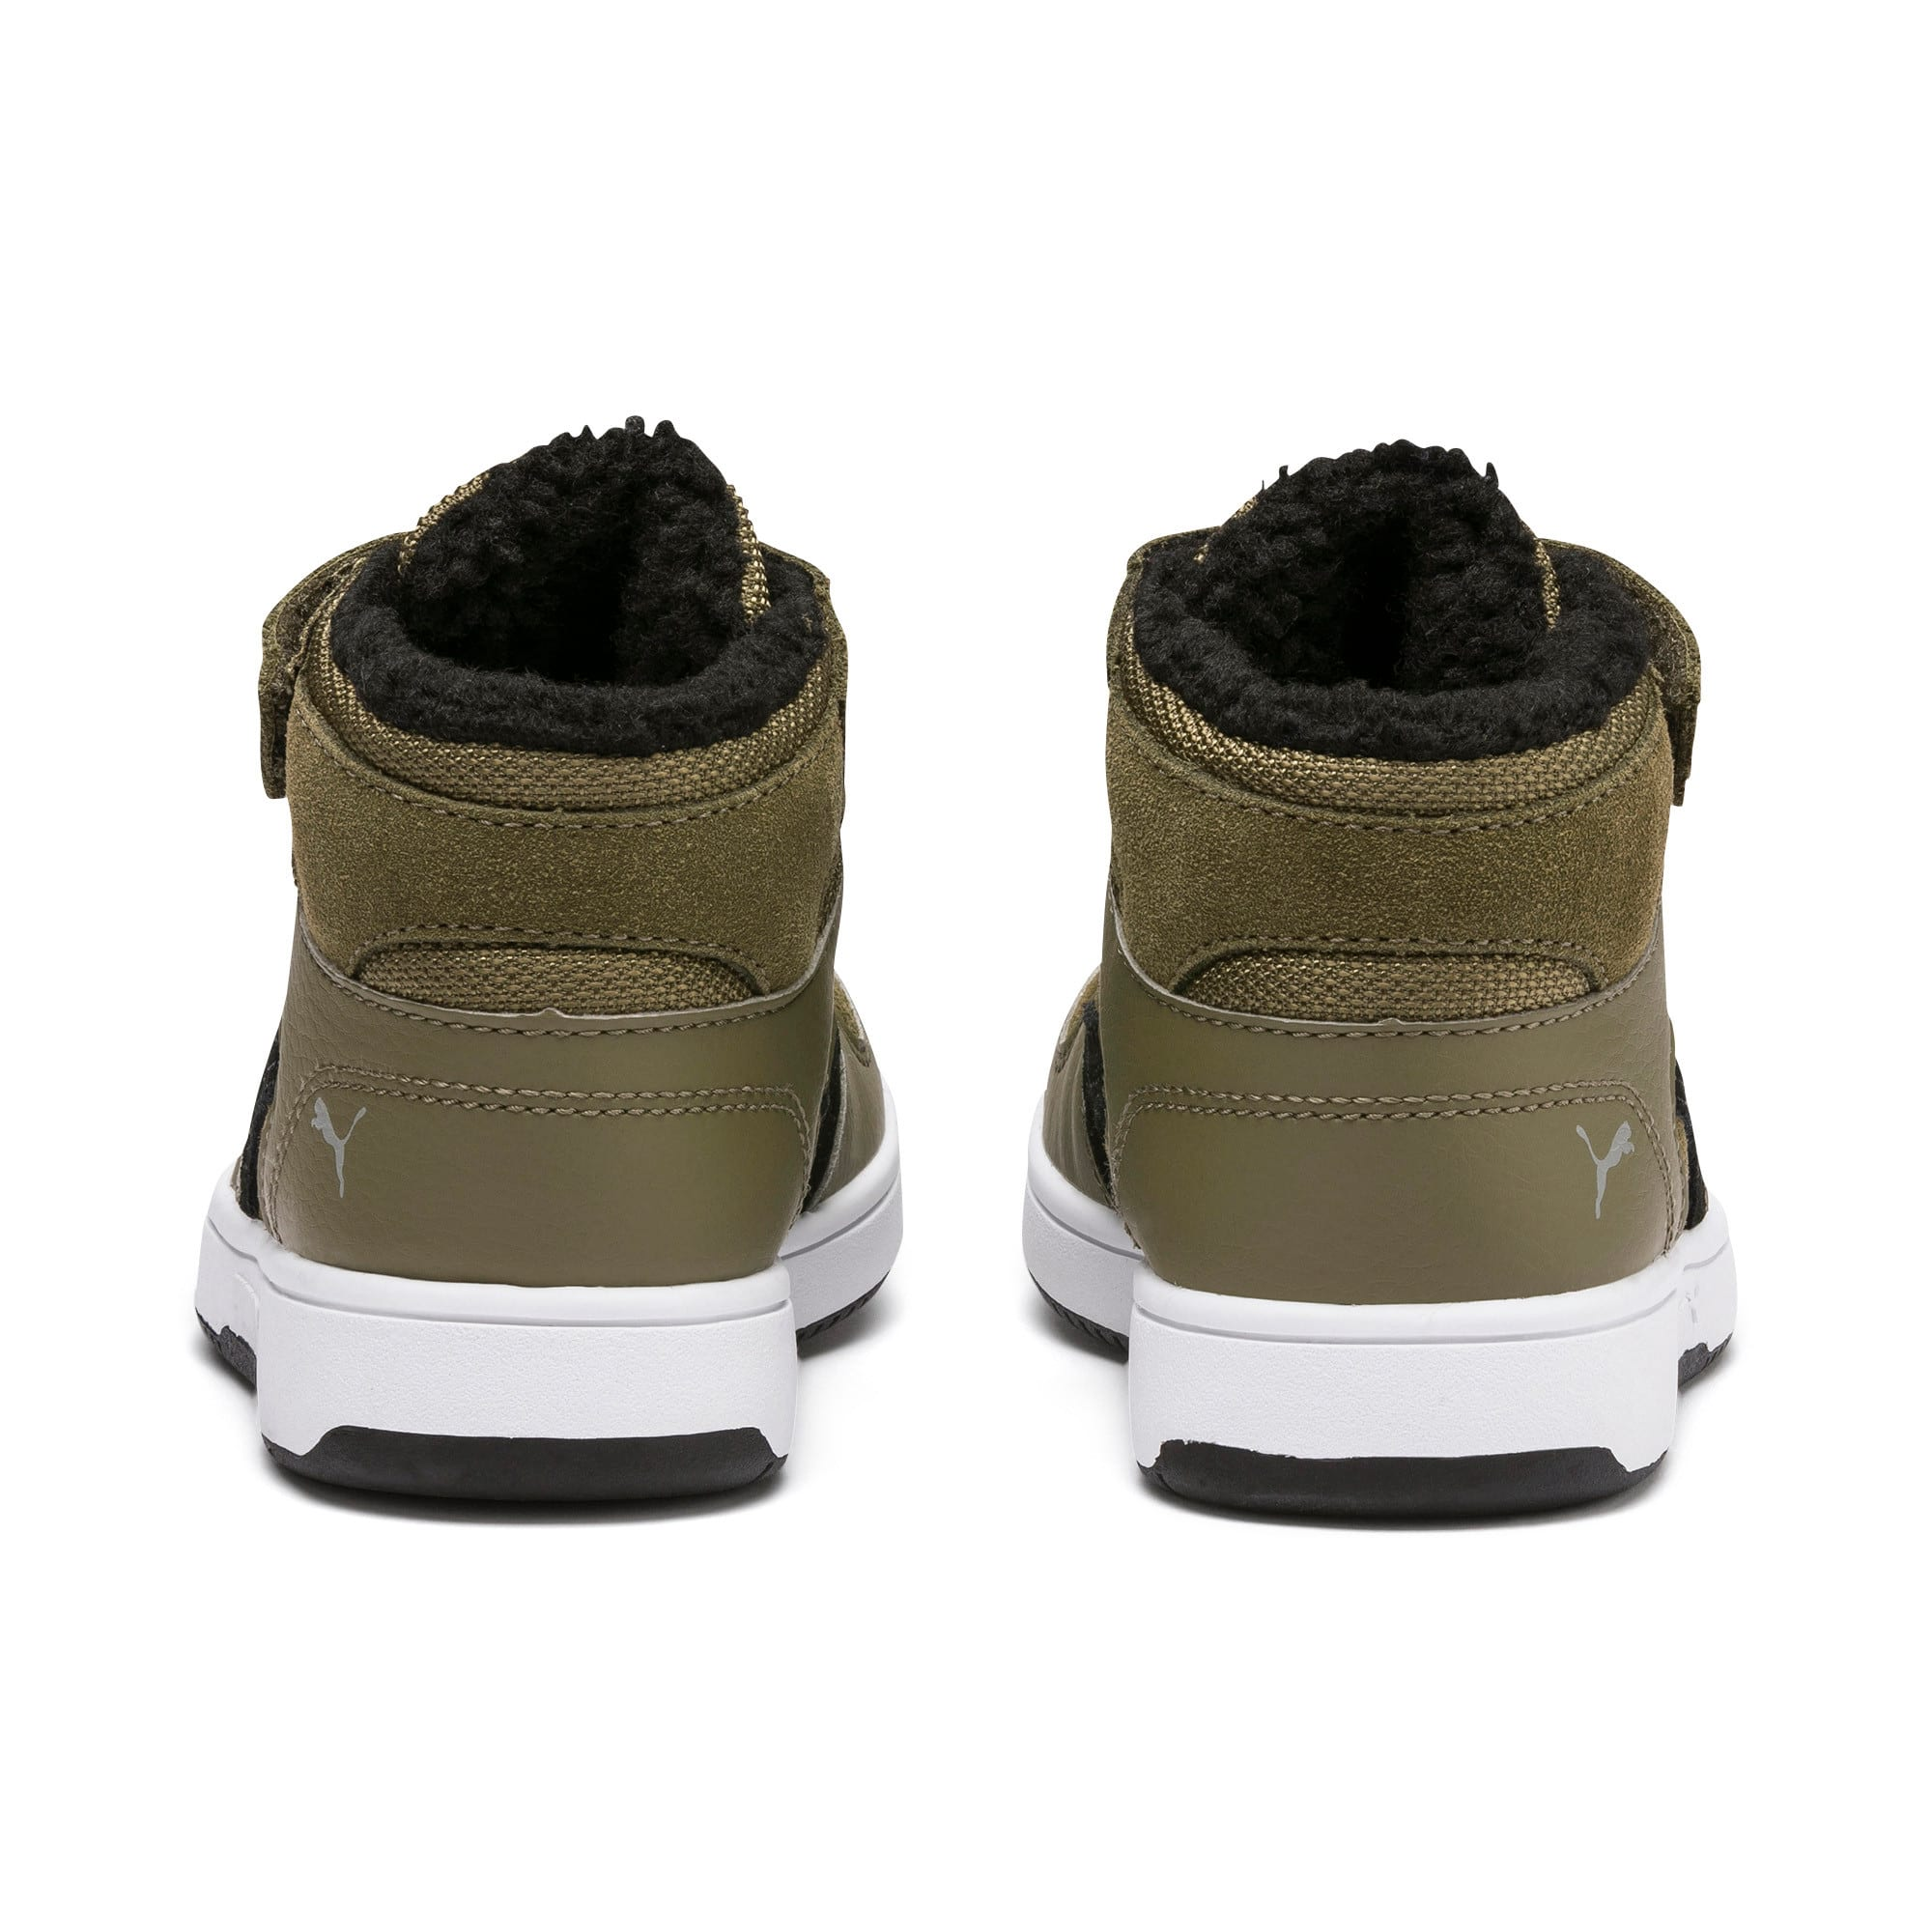 Thumbnail 3 of Rebound Lay-Up Fur V Kids' Trainers, B Olive-Black-Limestone-Wht, medium